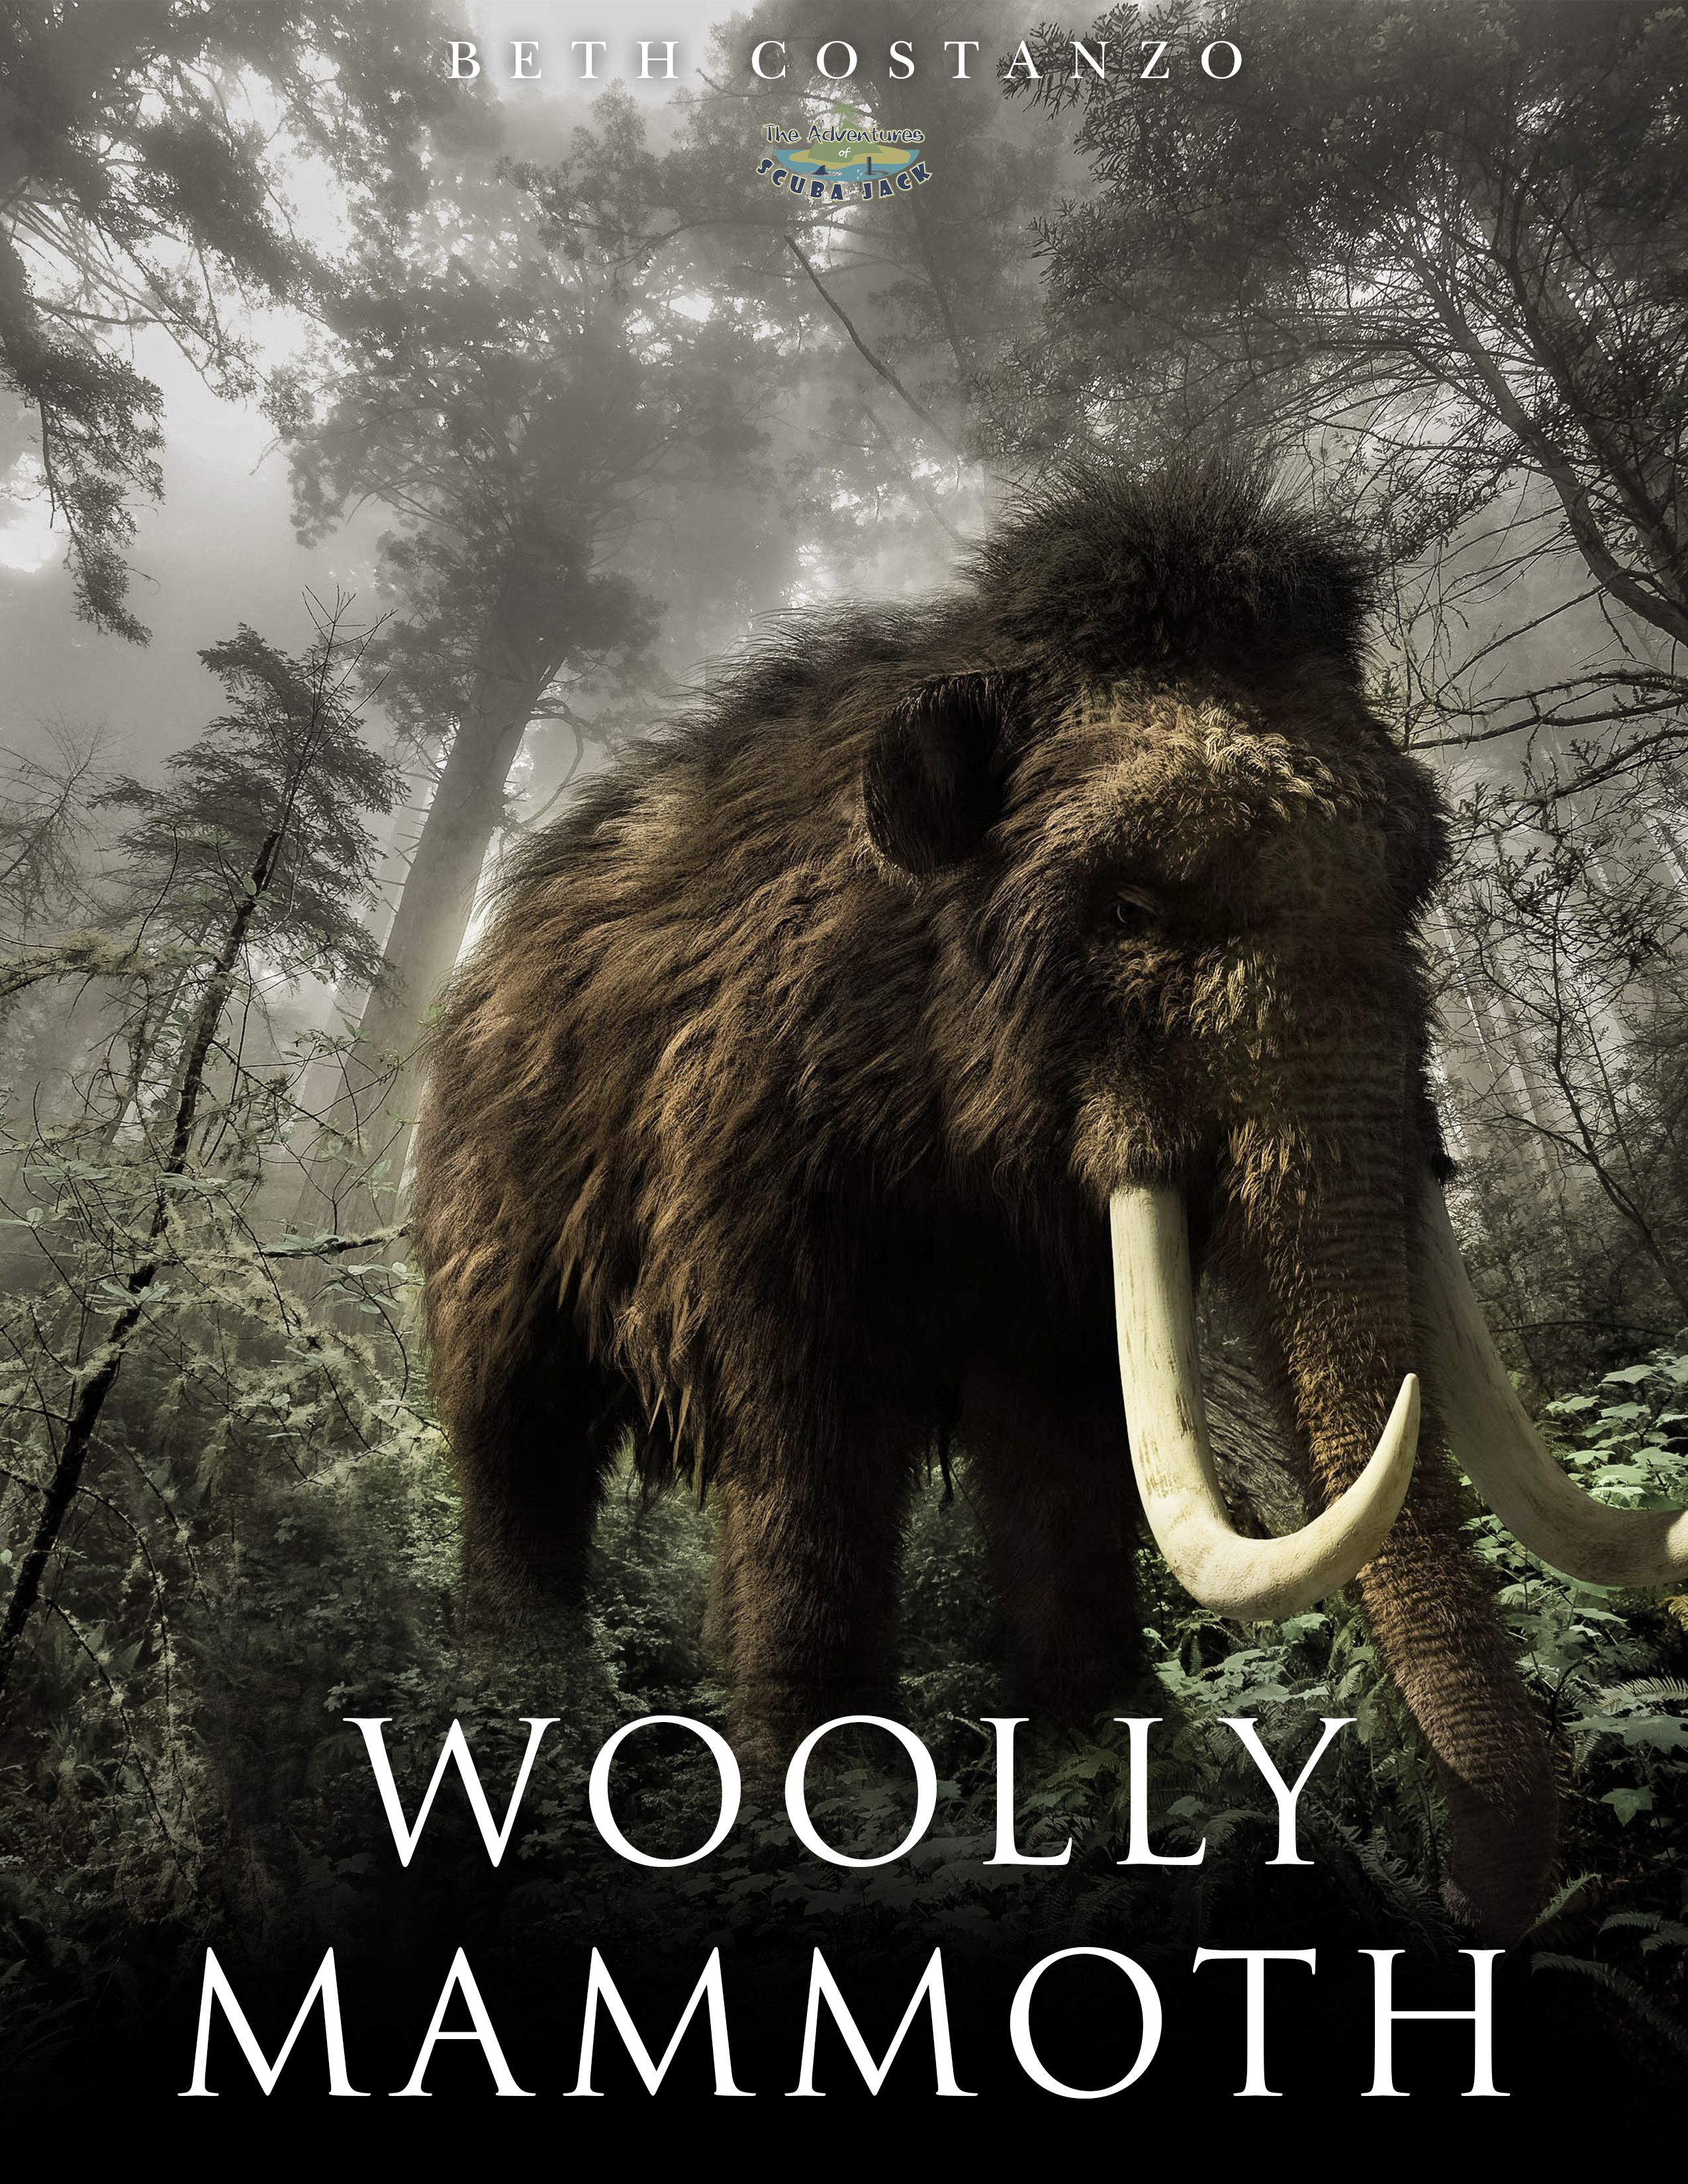 Woolly Mammoth In